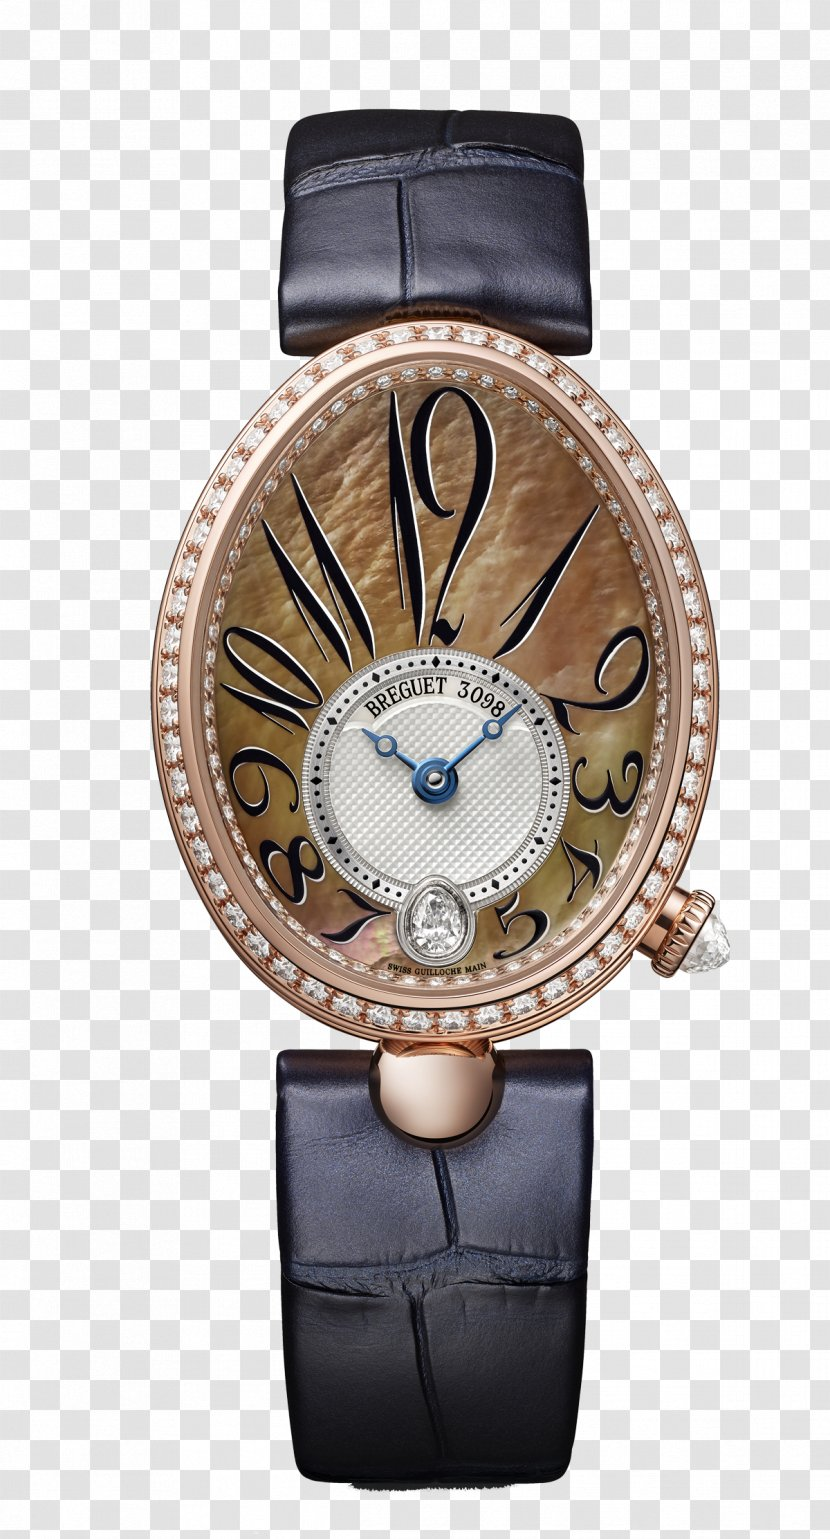 Breguet Automatic Watch Baselworld Jewellery - Buckle Transparent PNG